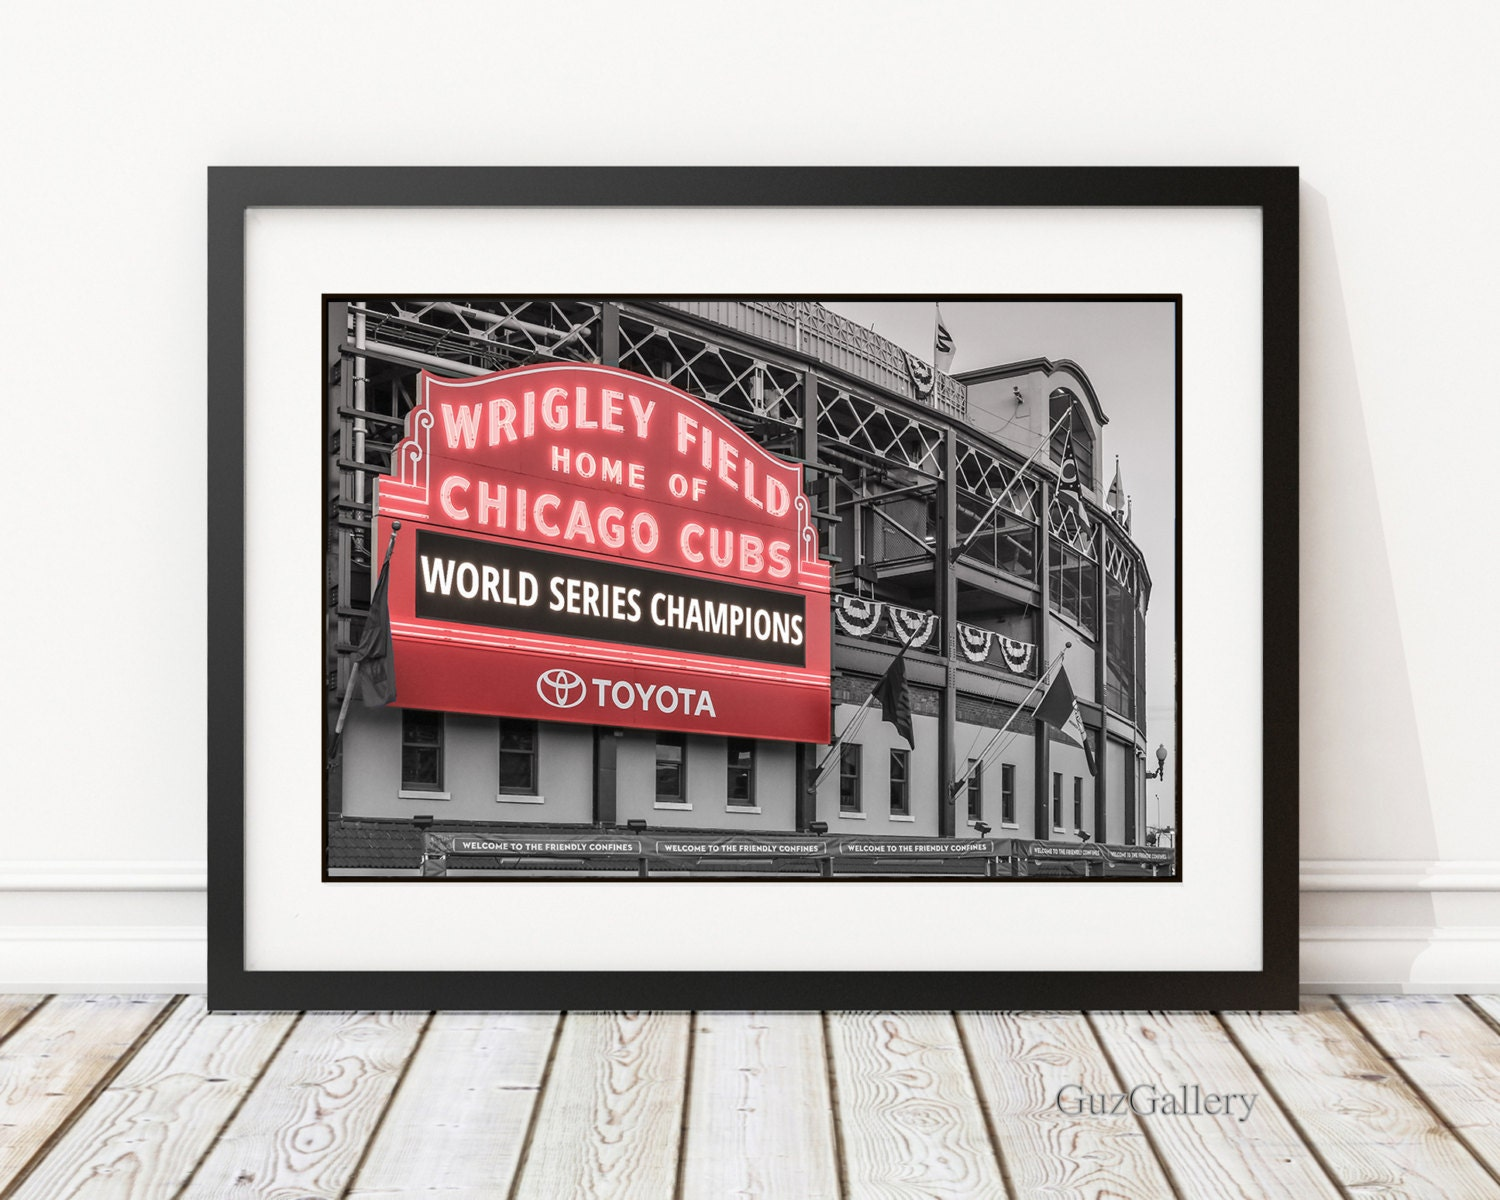 chicago cubs world series frame 14x18 18x18 18x24 19x25 chicago cubs wrigley field marquee mlb cubbies man cave baseball art